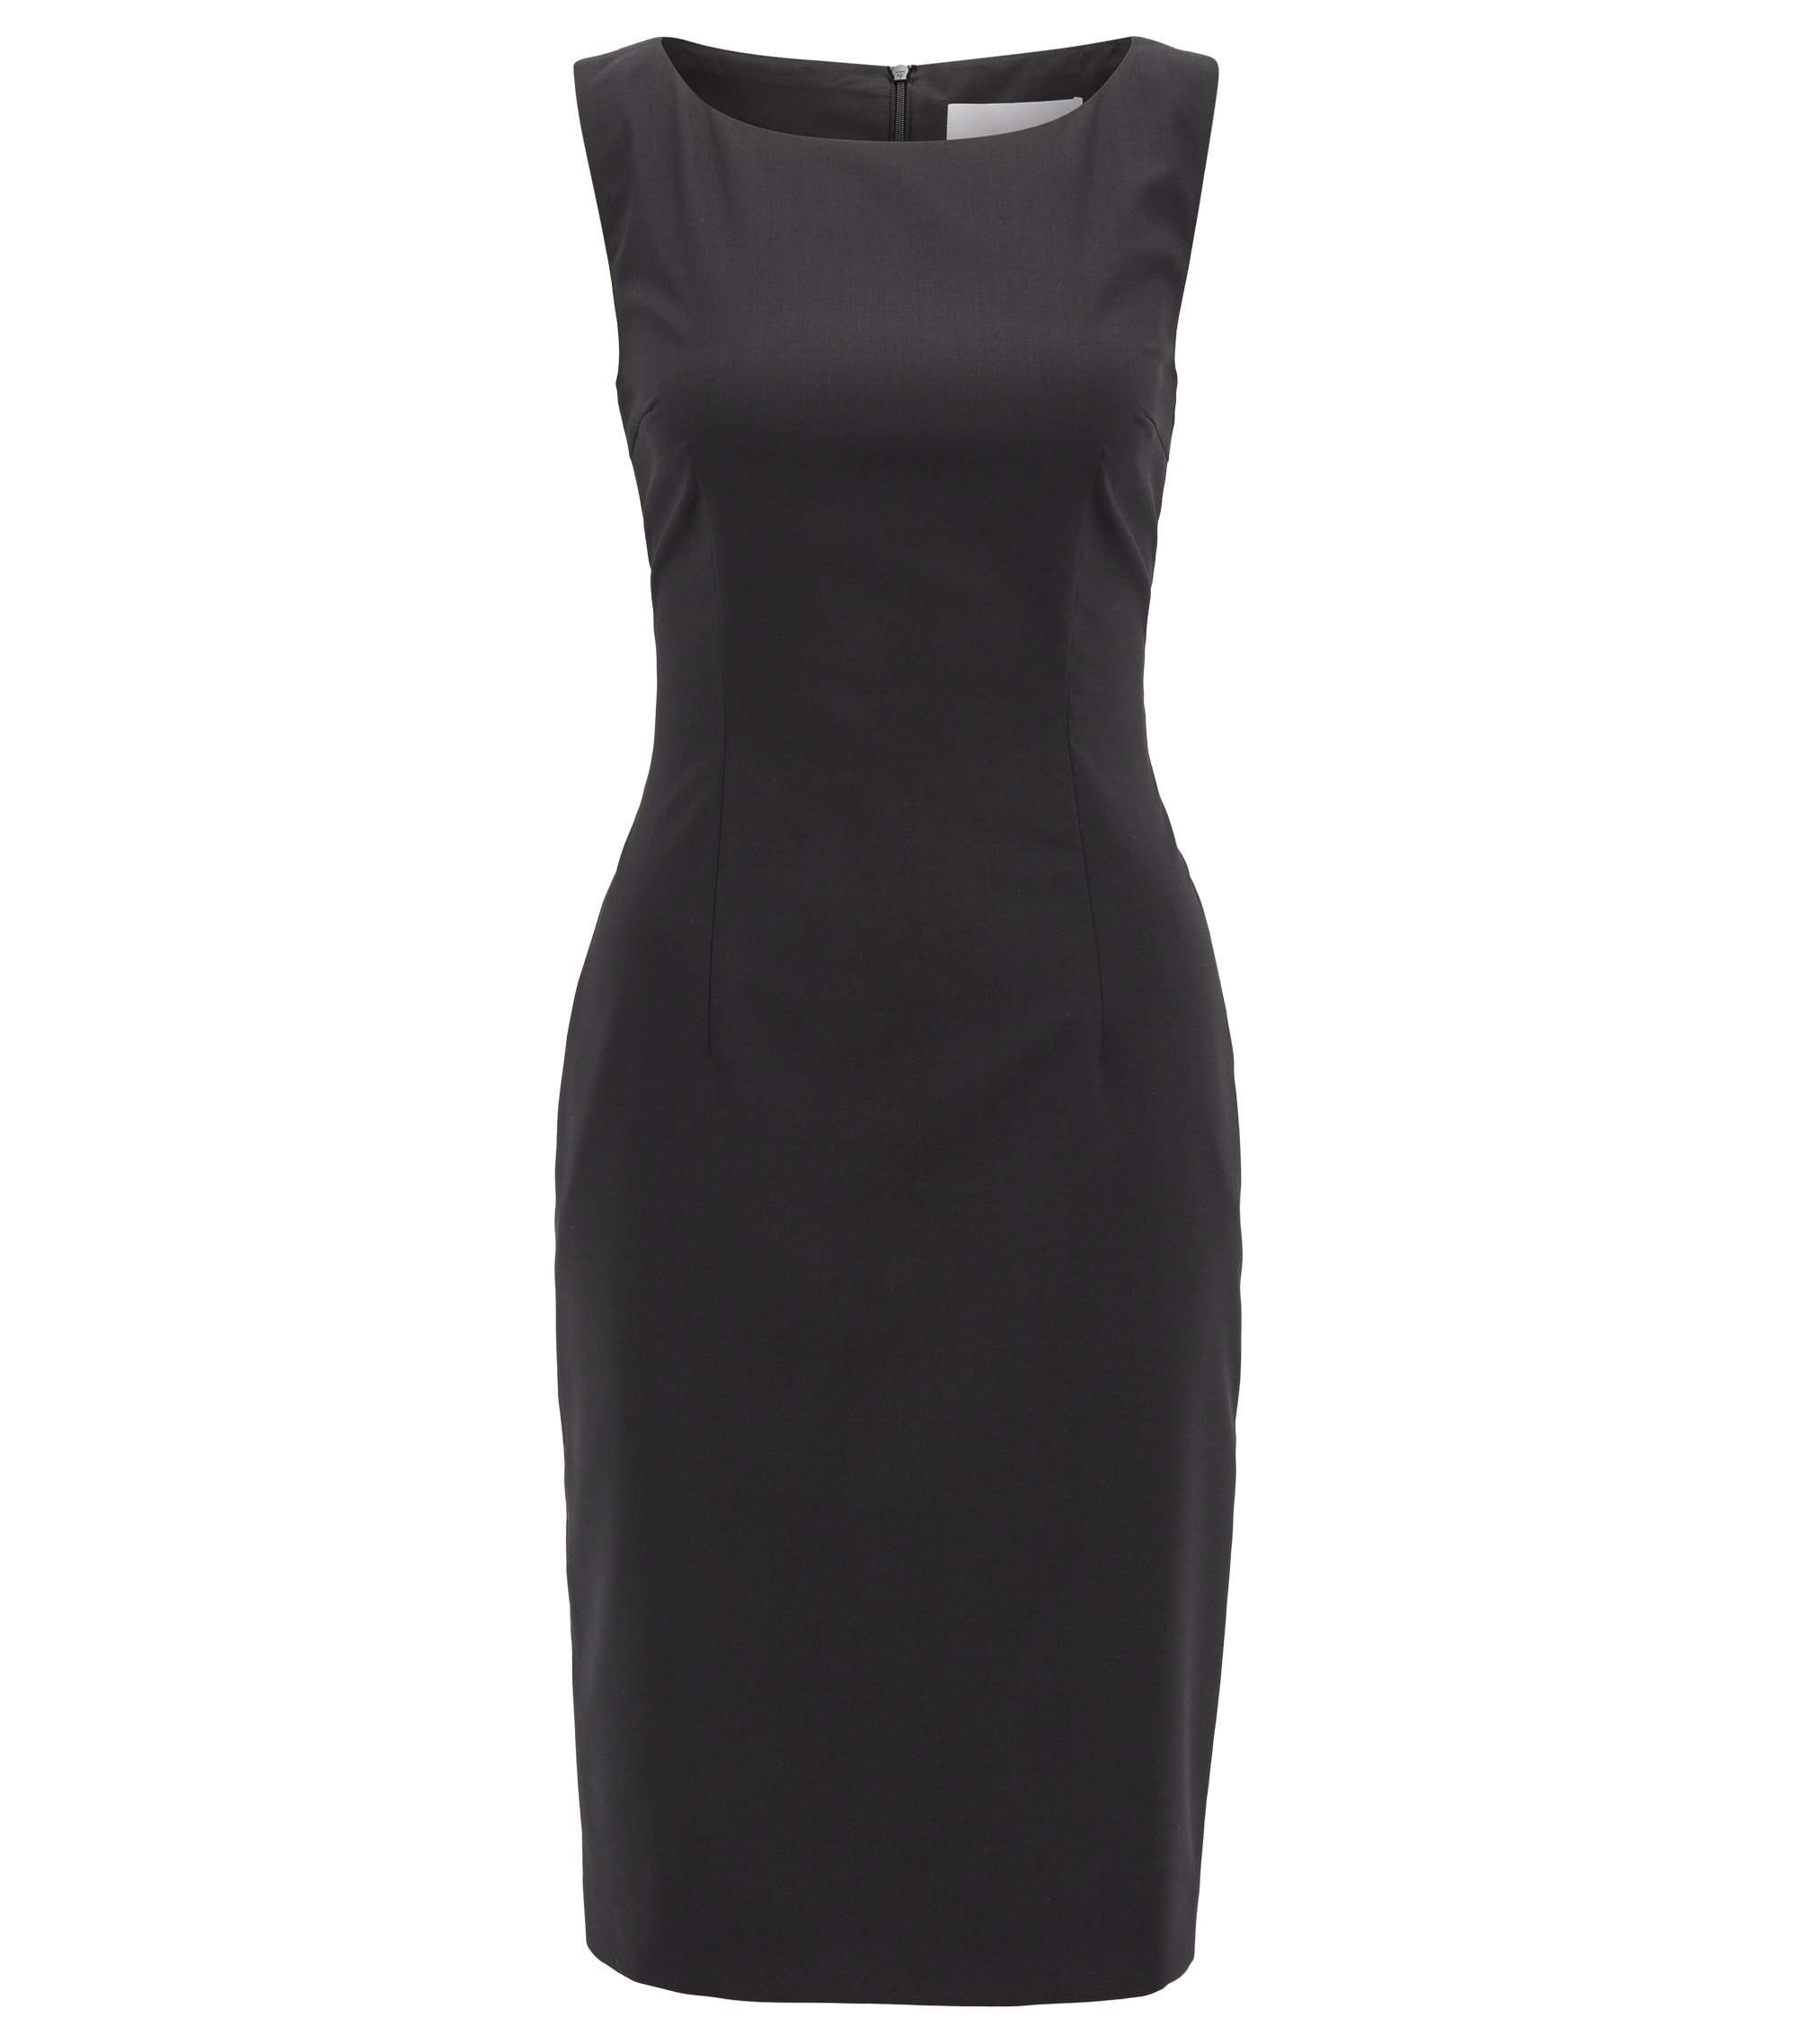 Sleeveless shift dress in stretch virgin wool, Black